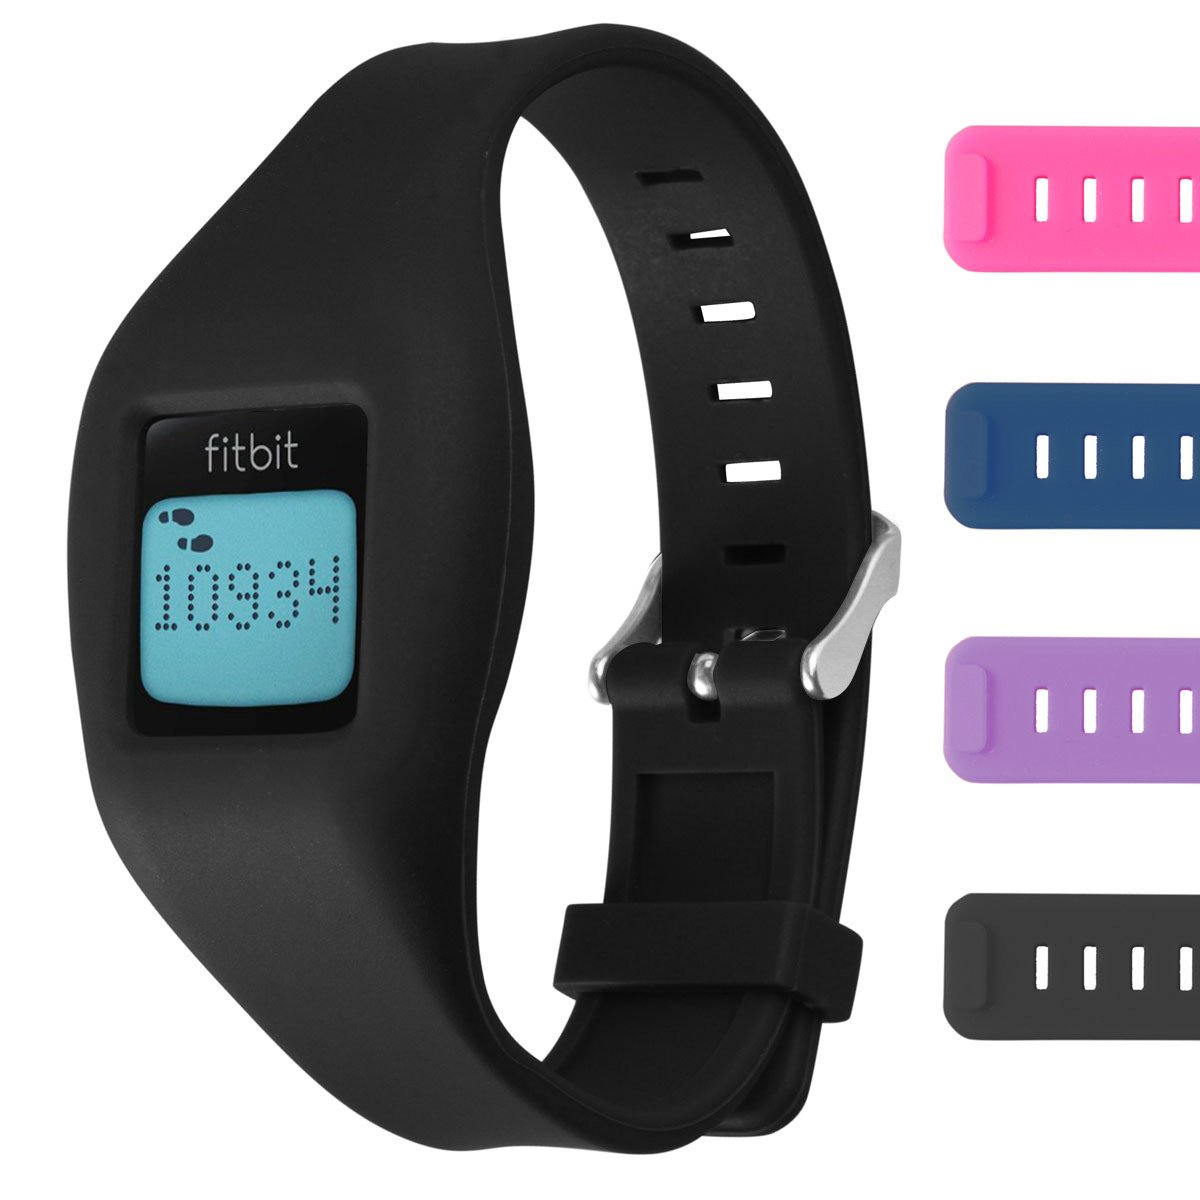 Fitbit Zip Buckle Bracelet - Adjustable Wristband and Wristwatch Style - Fitbit Zip Silicone Replacement Secure Band with Chrome Watch Clasp and Fastener Buckle - Fix the Tracker Fall Off Problem